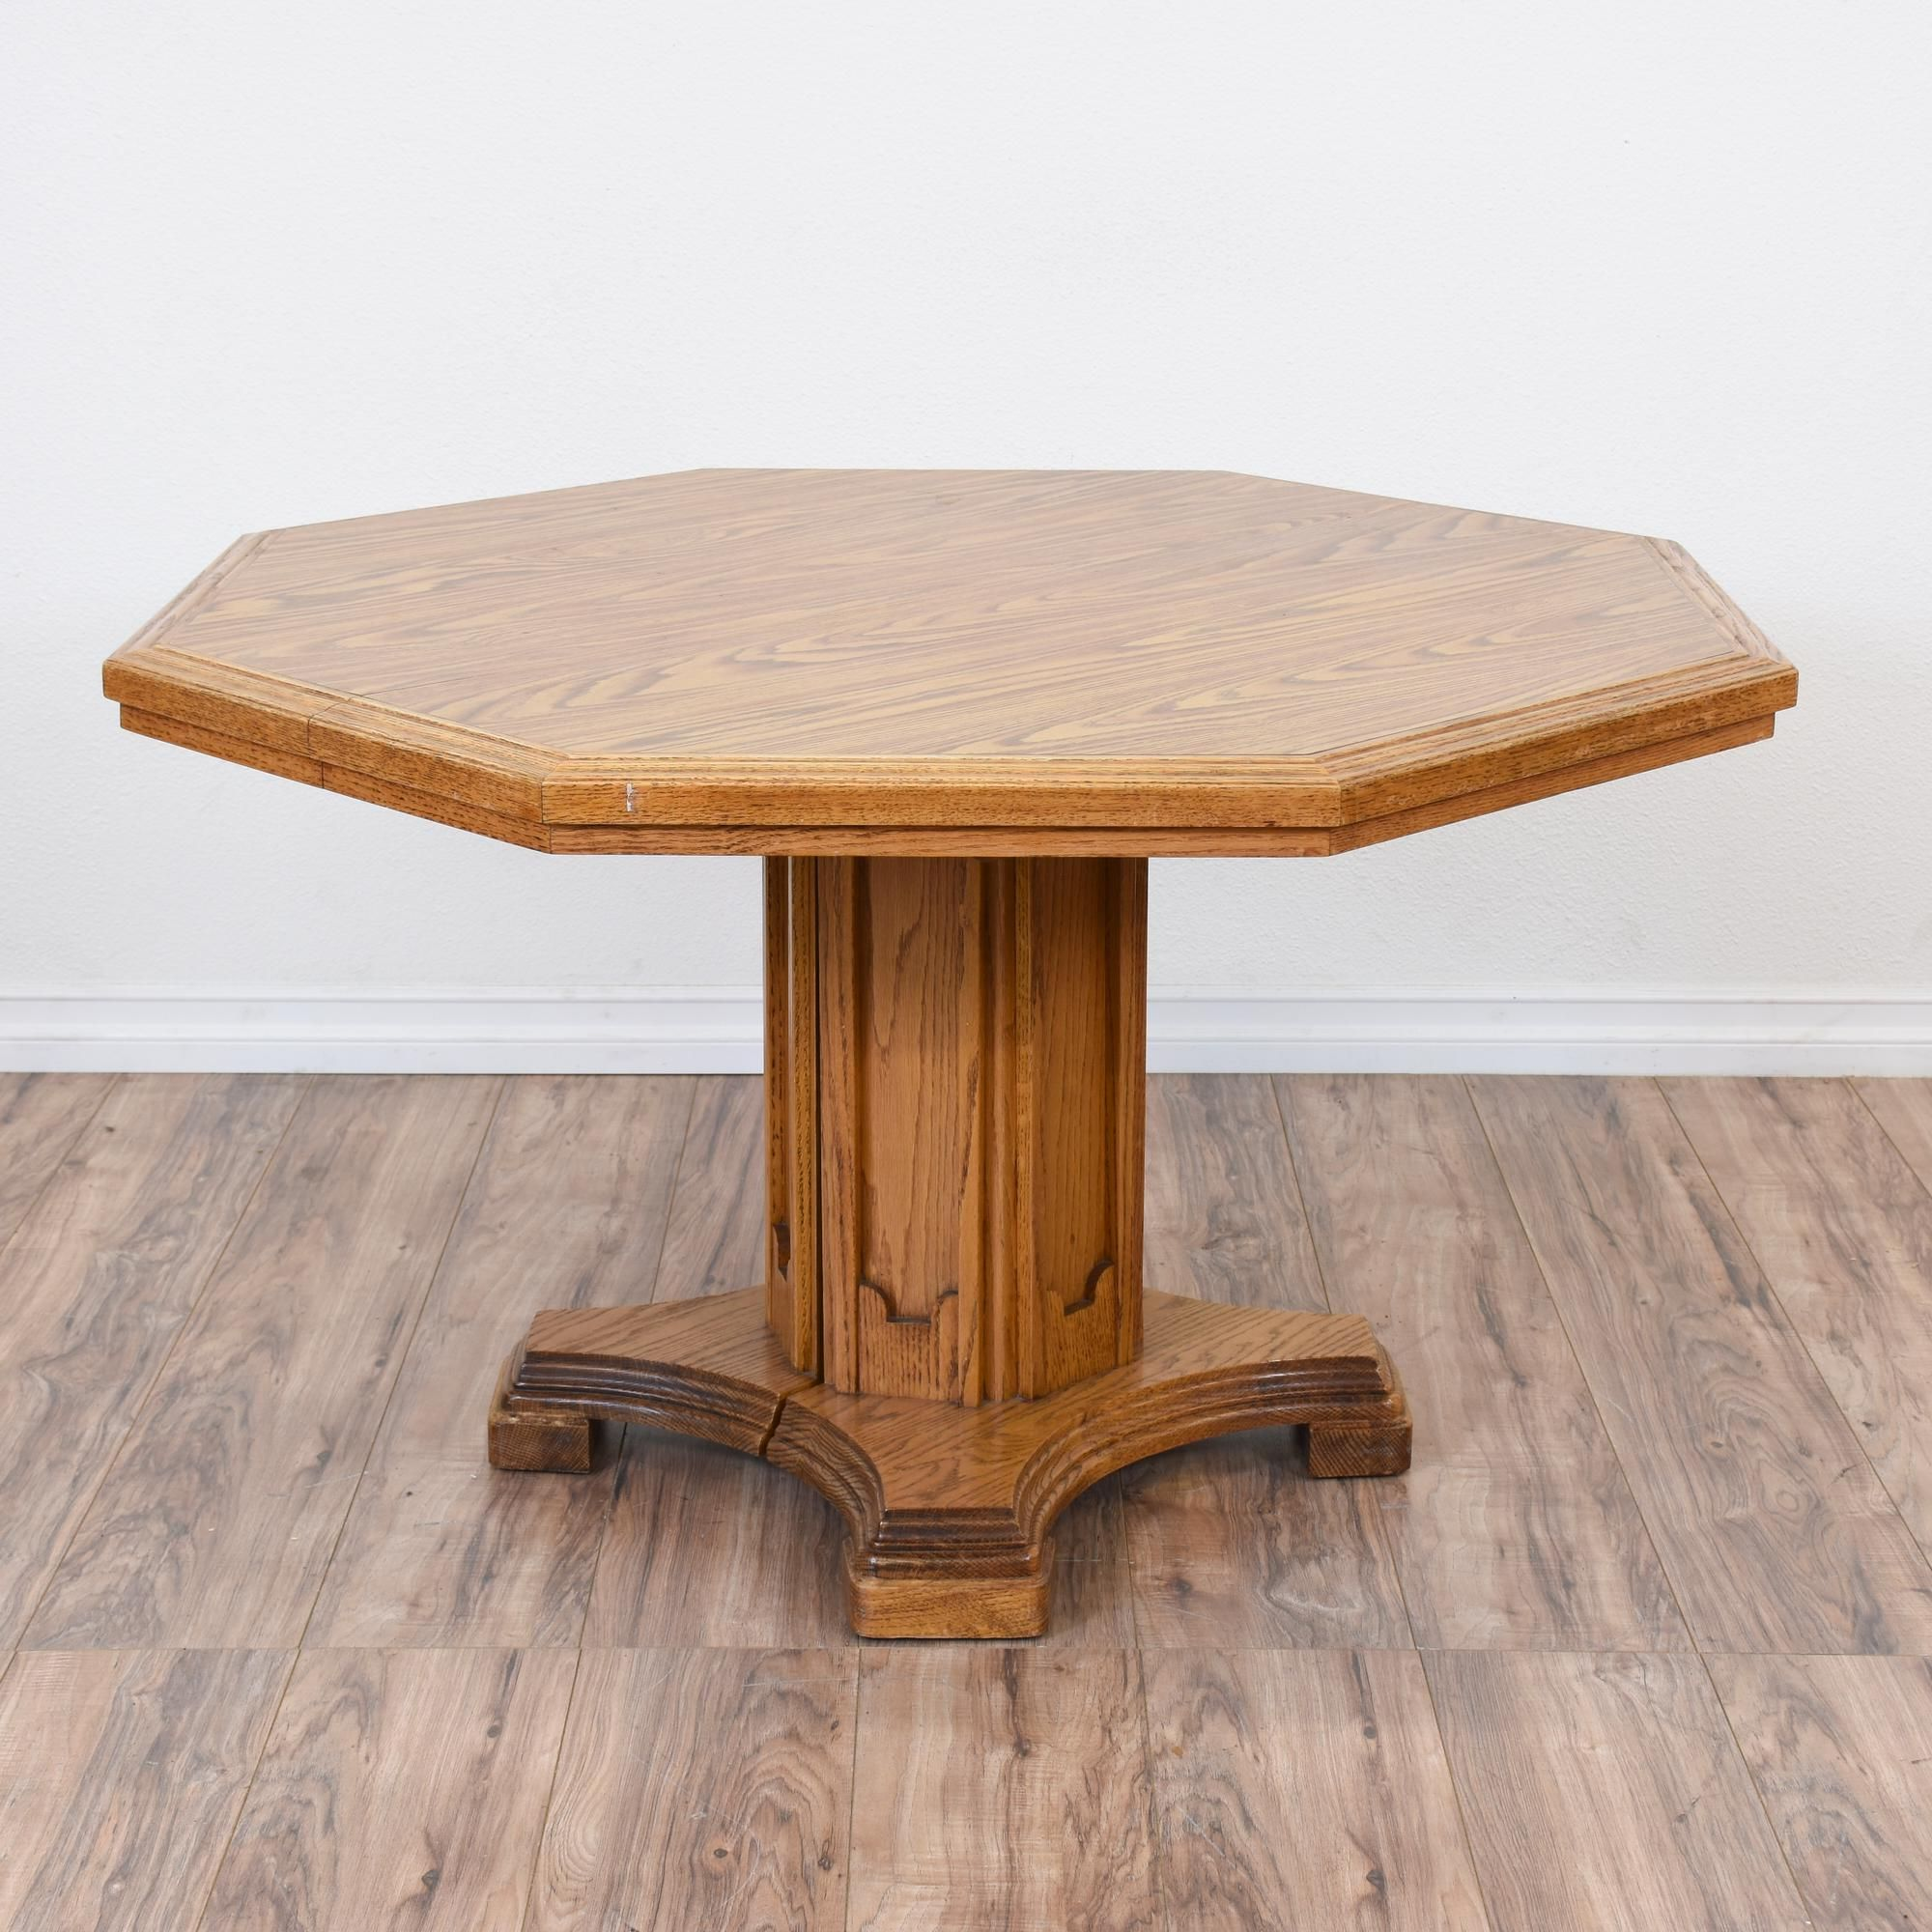 This Octagon Pedestal Table Is Featured In A Solid Wood With Glossy Honey Oak Finish